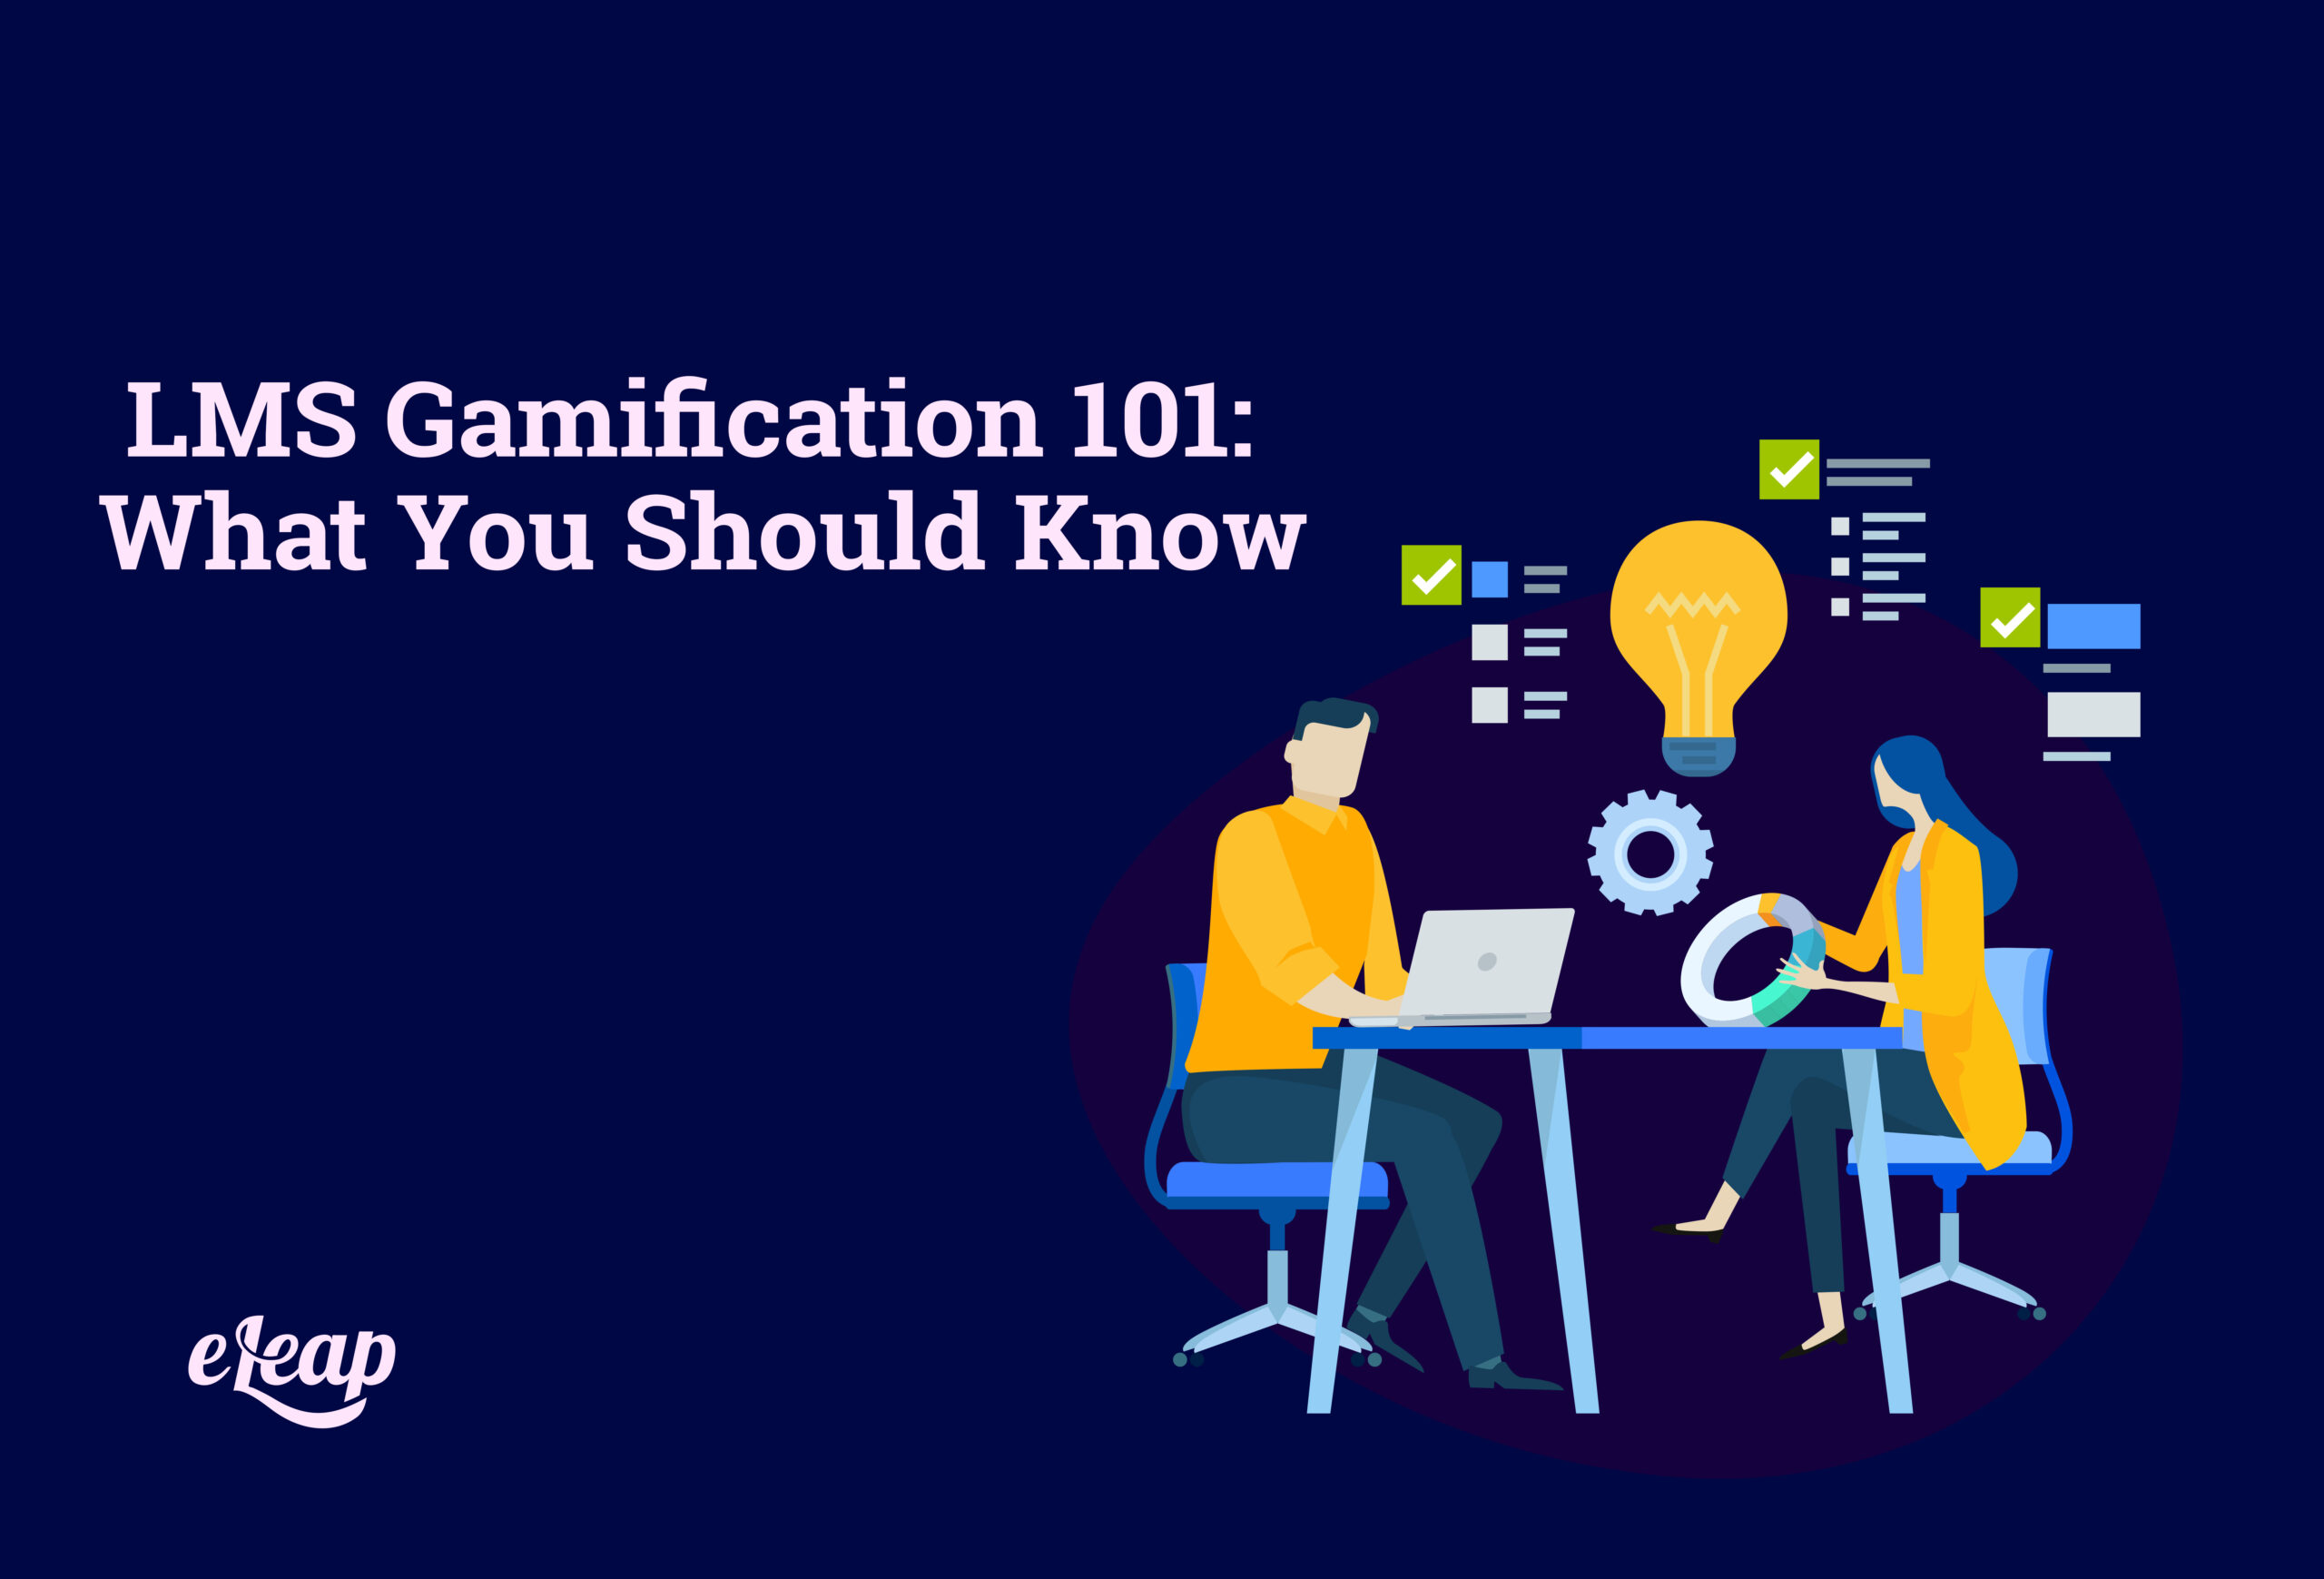 LMS Gamification 101: What You Should Know